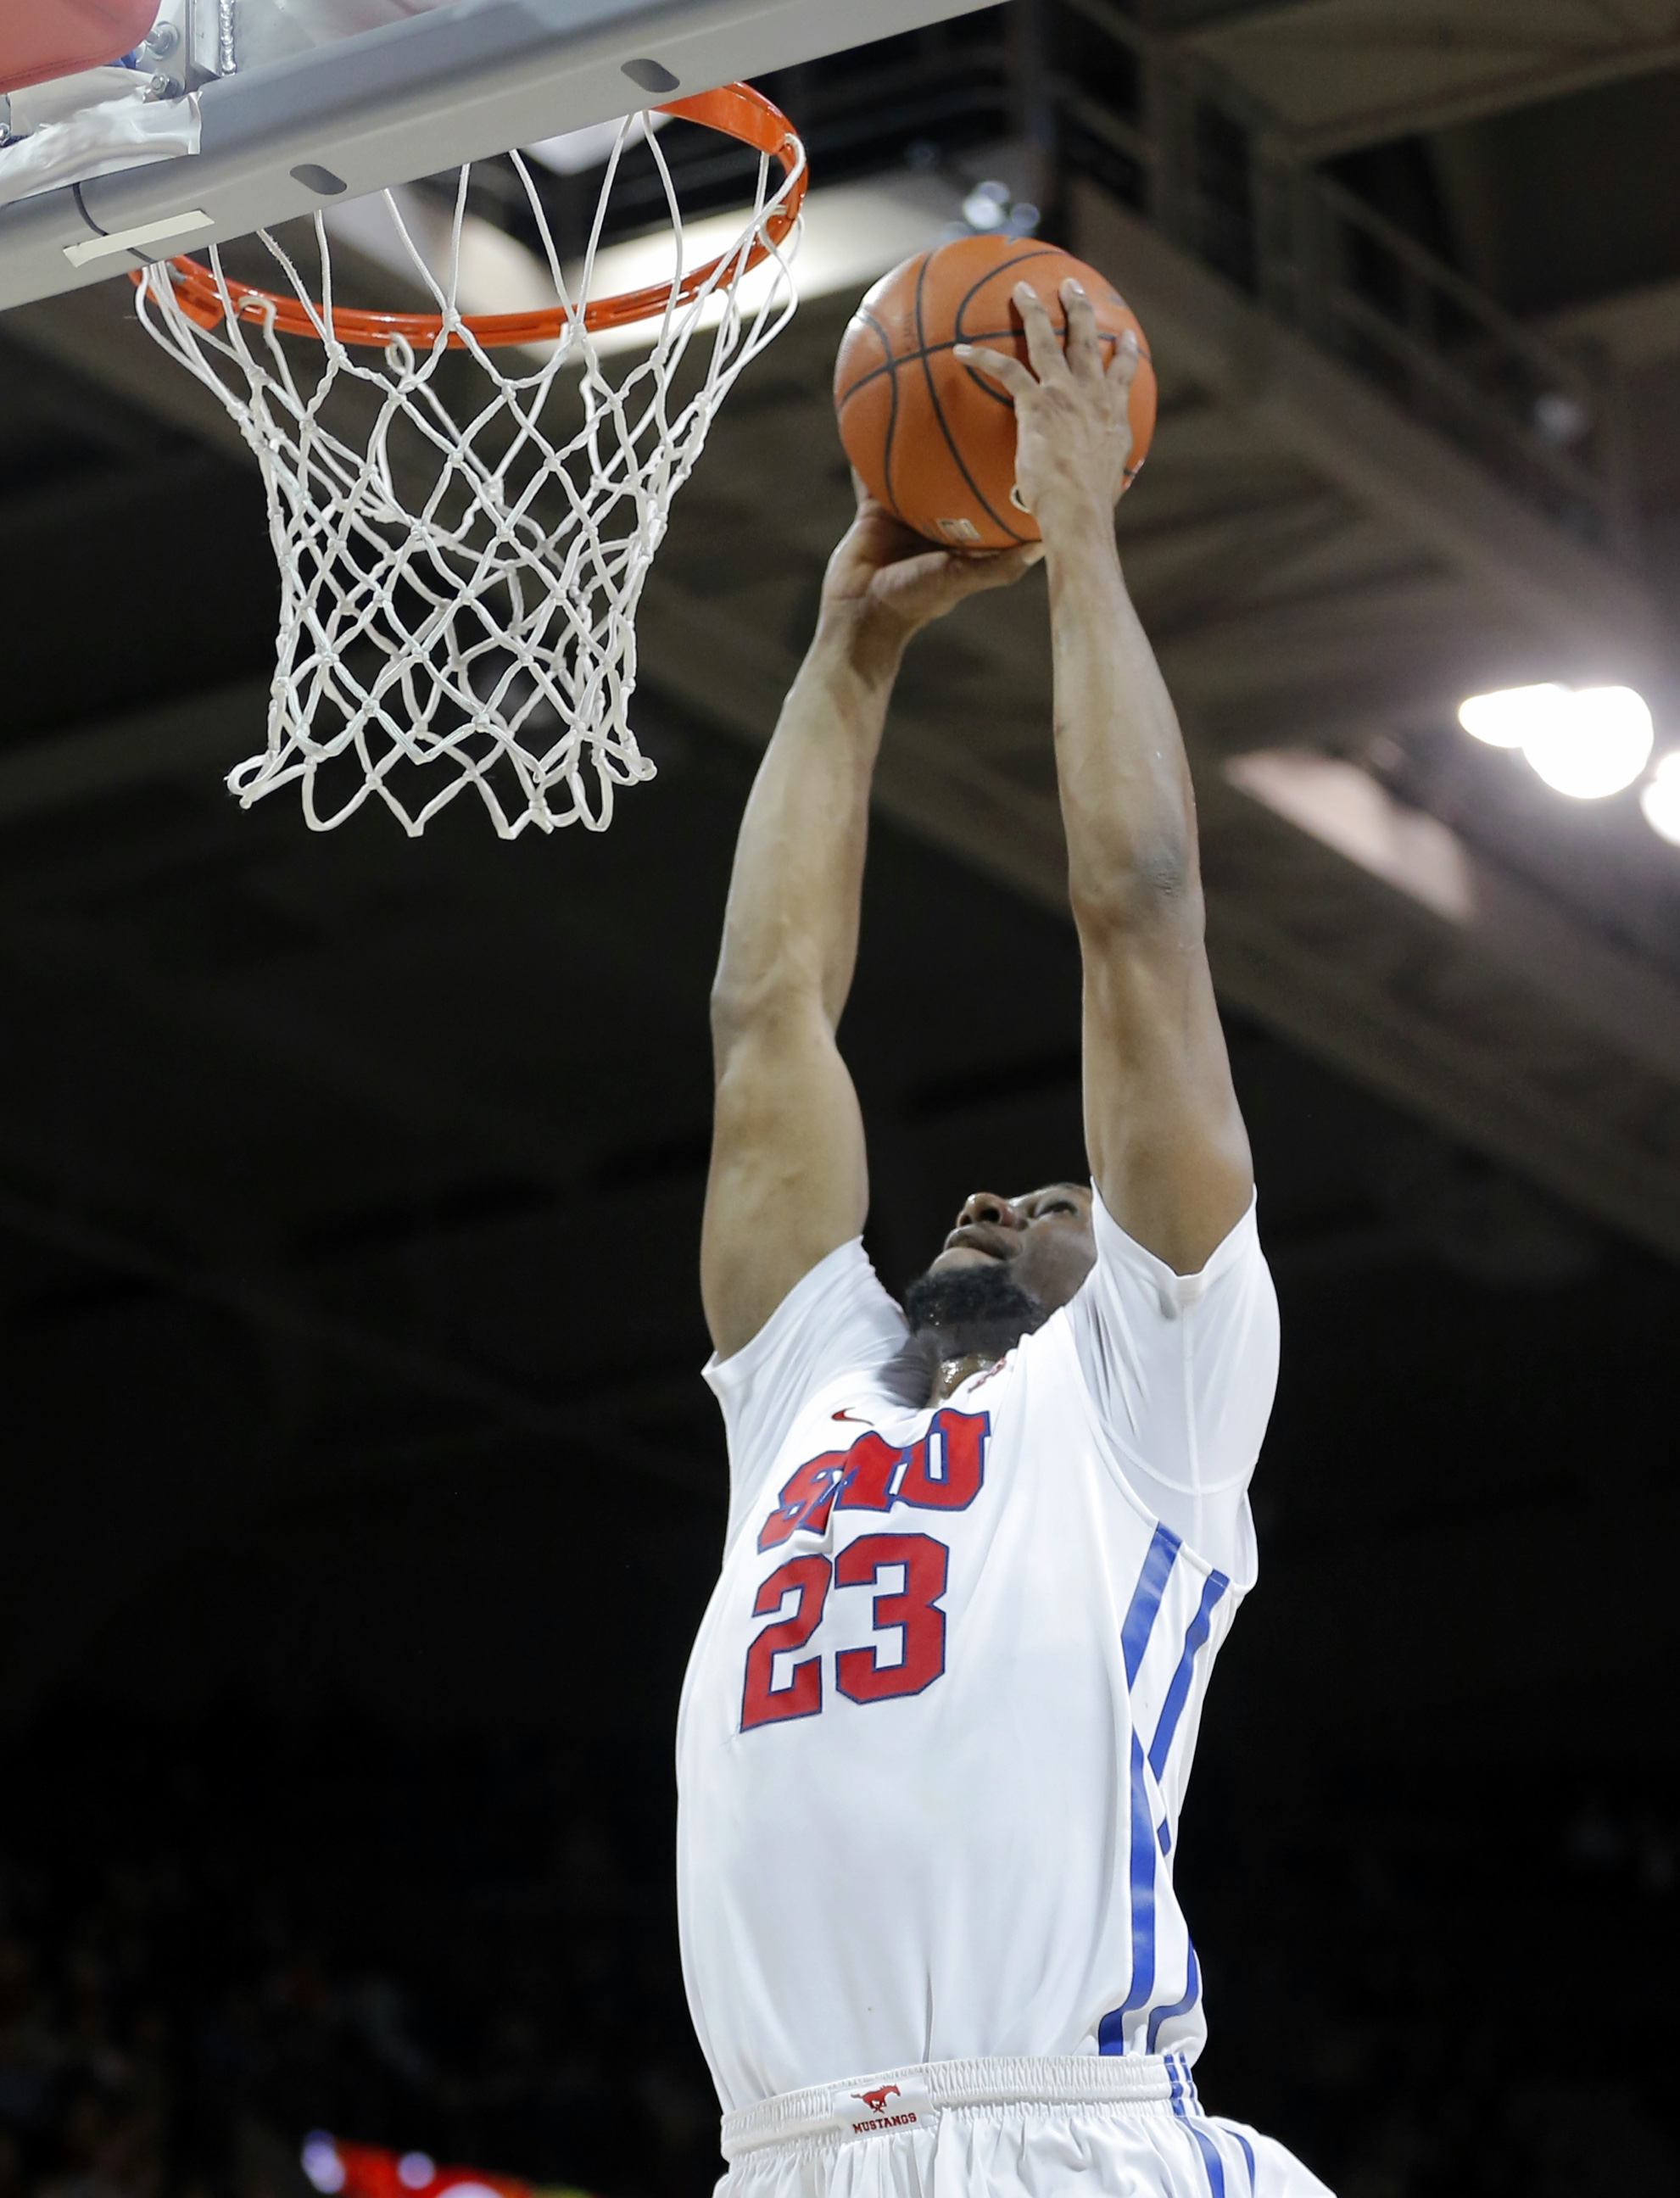 SMU forward Jordan Tolbert dunks during the second half of an NCAA college basketball game against Hampton, Thursday, Dec. 17, 2015, in Dallas. SMU won 105-72. (AP Photo/Brandon Wade)